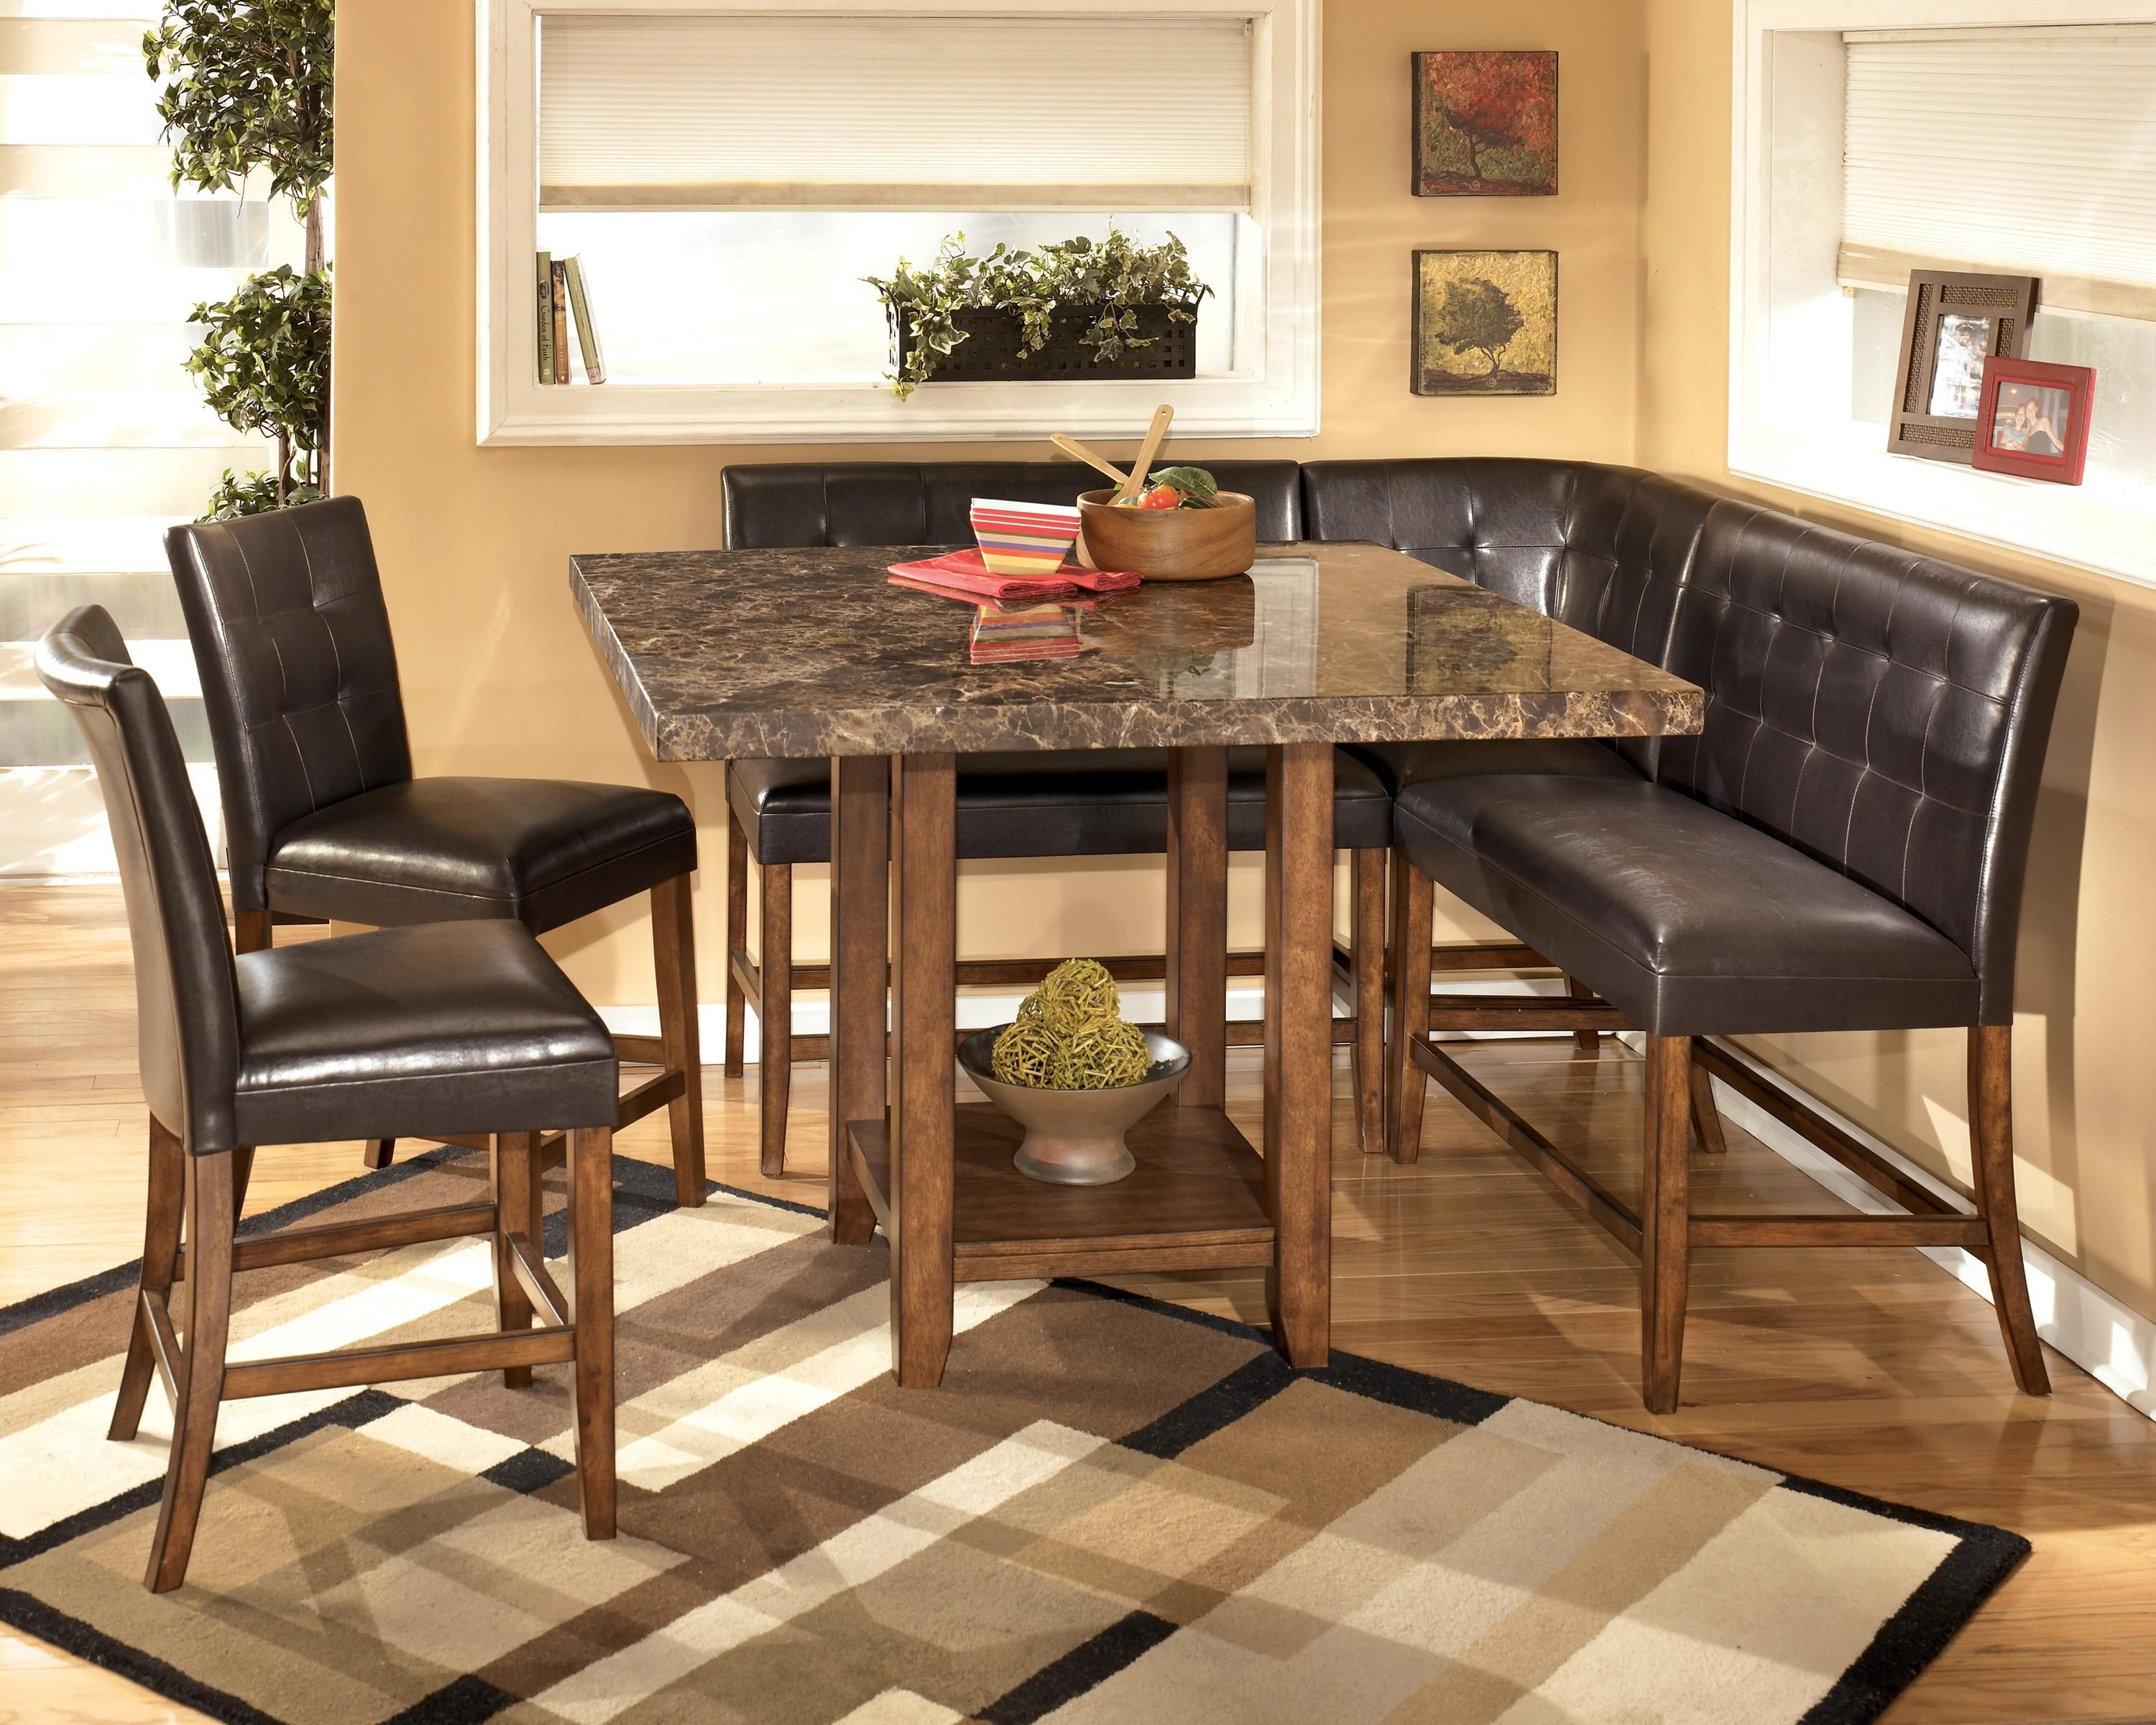 kitchen dining tables Lacey Corner Counter Height Dining Room Set by Signature Design in Casual Dining Sets The rich contemporary design of the Lacey dining room collection